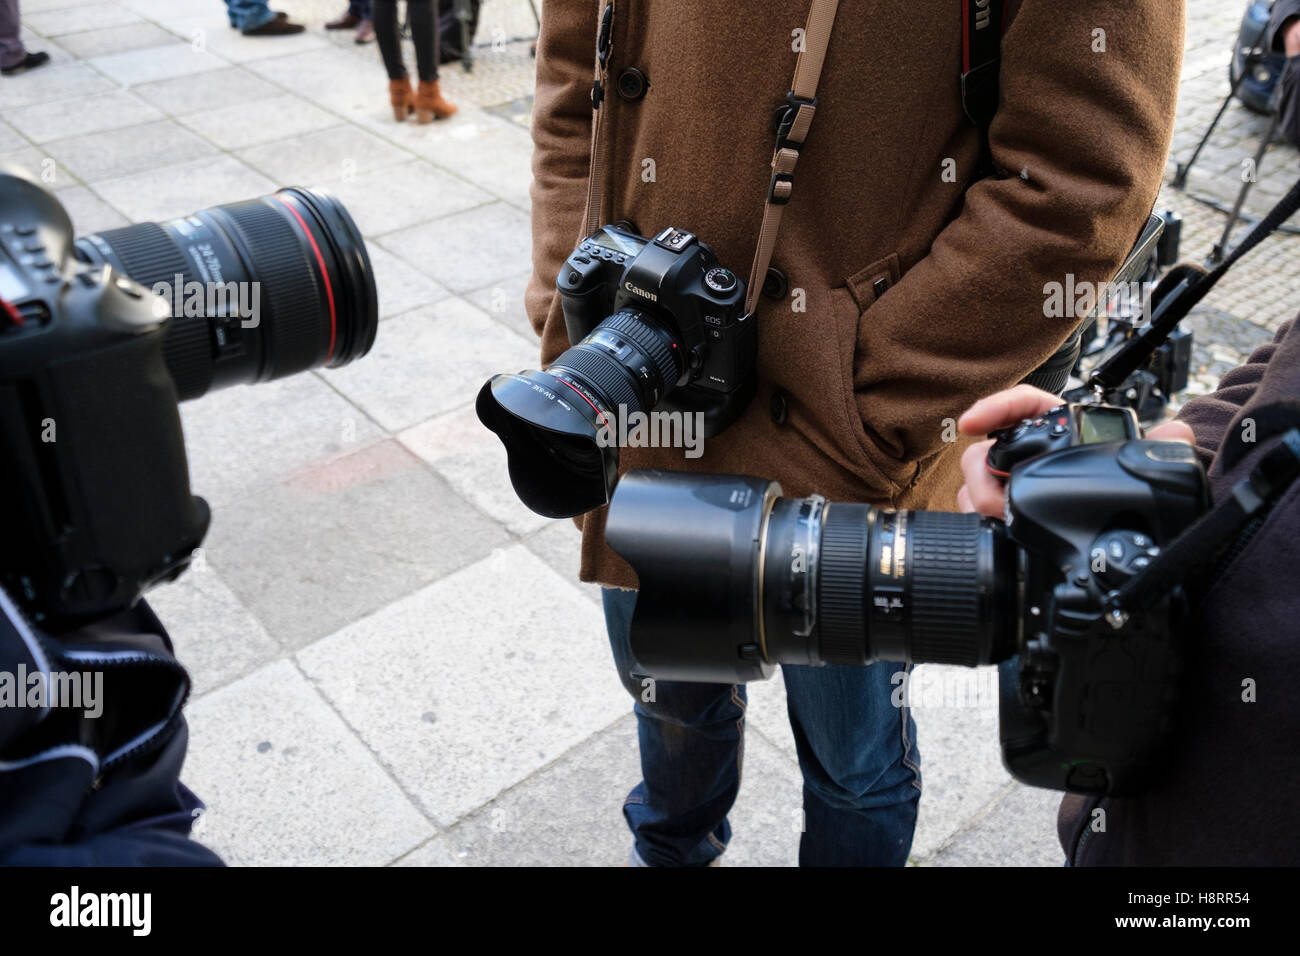 Professional photojournalists with their cameras - Stock Image